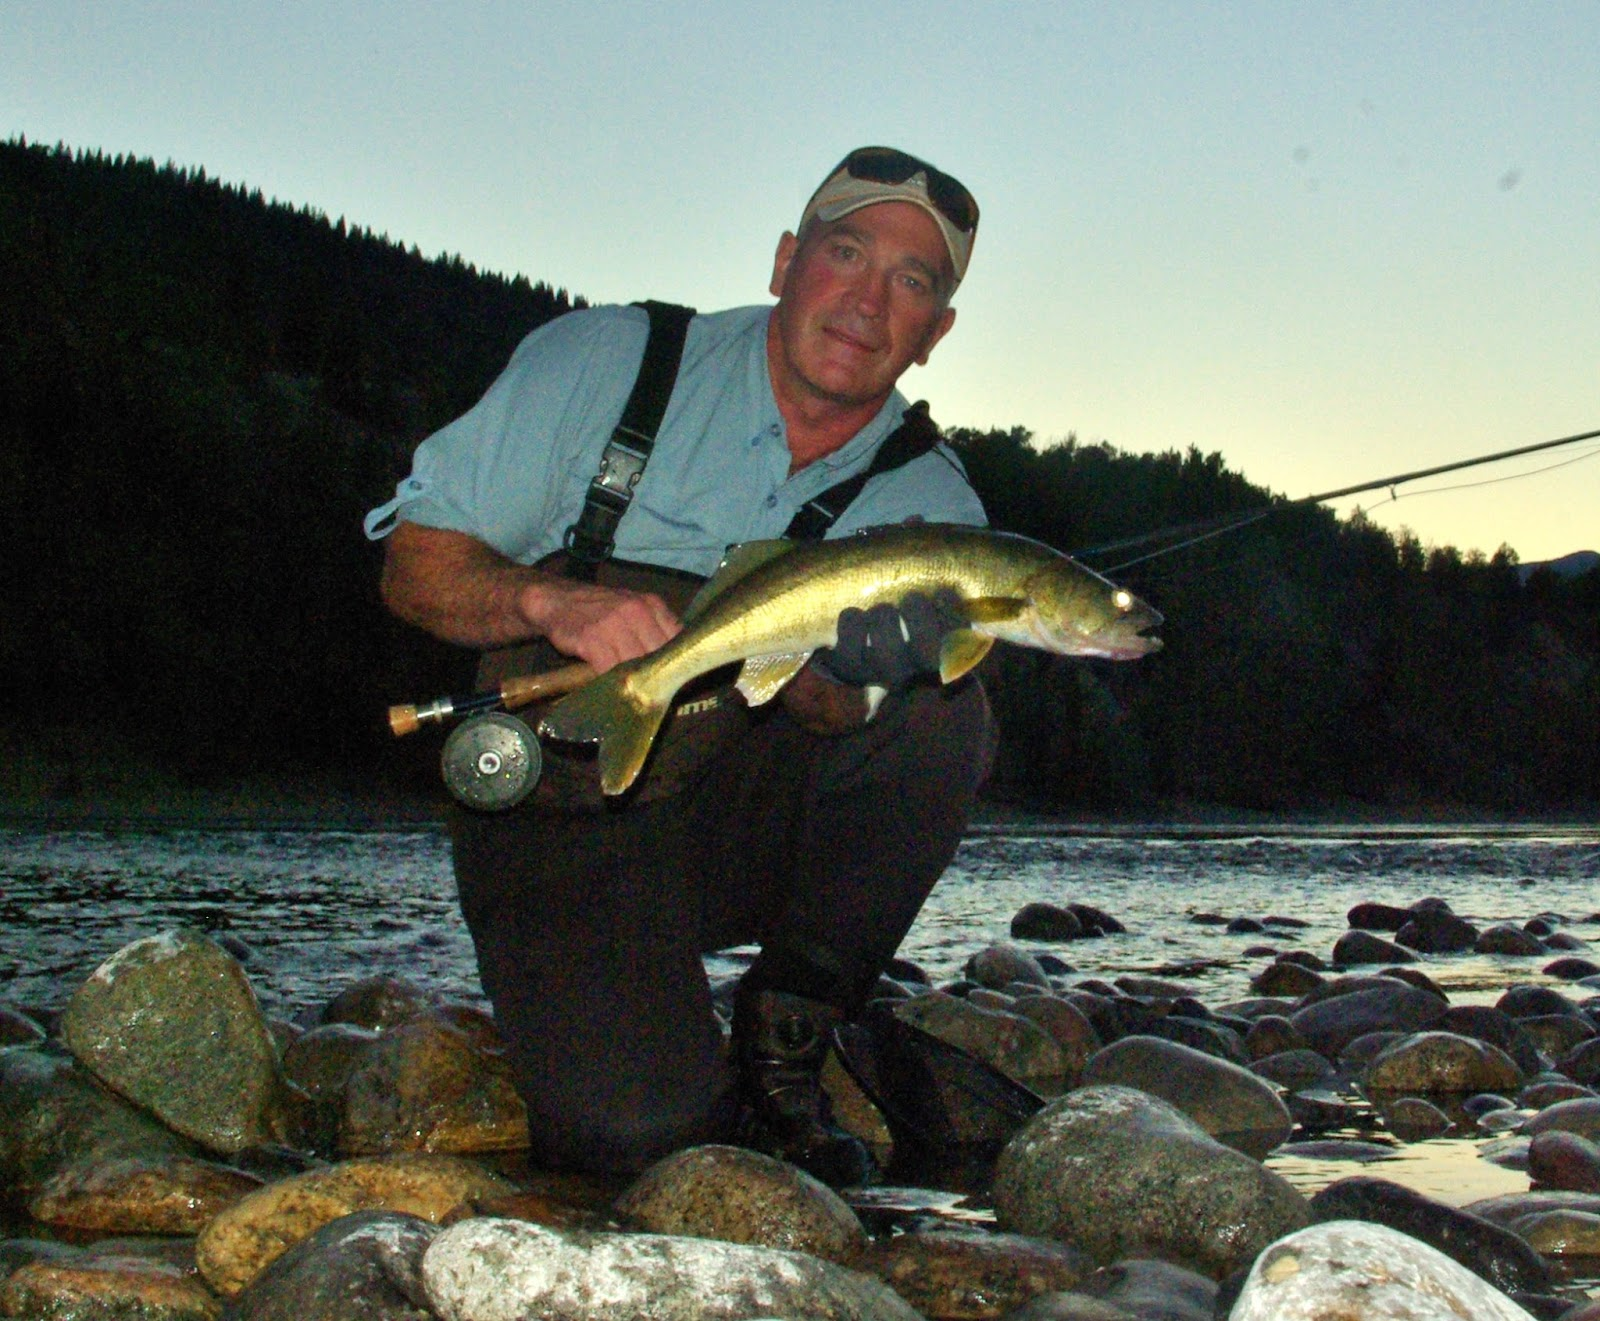 Fly fish bc columbia river walleye on the fly for Walleye fishing columbia river